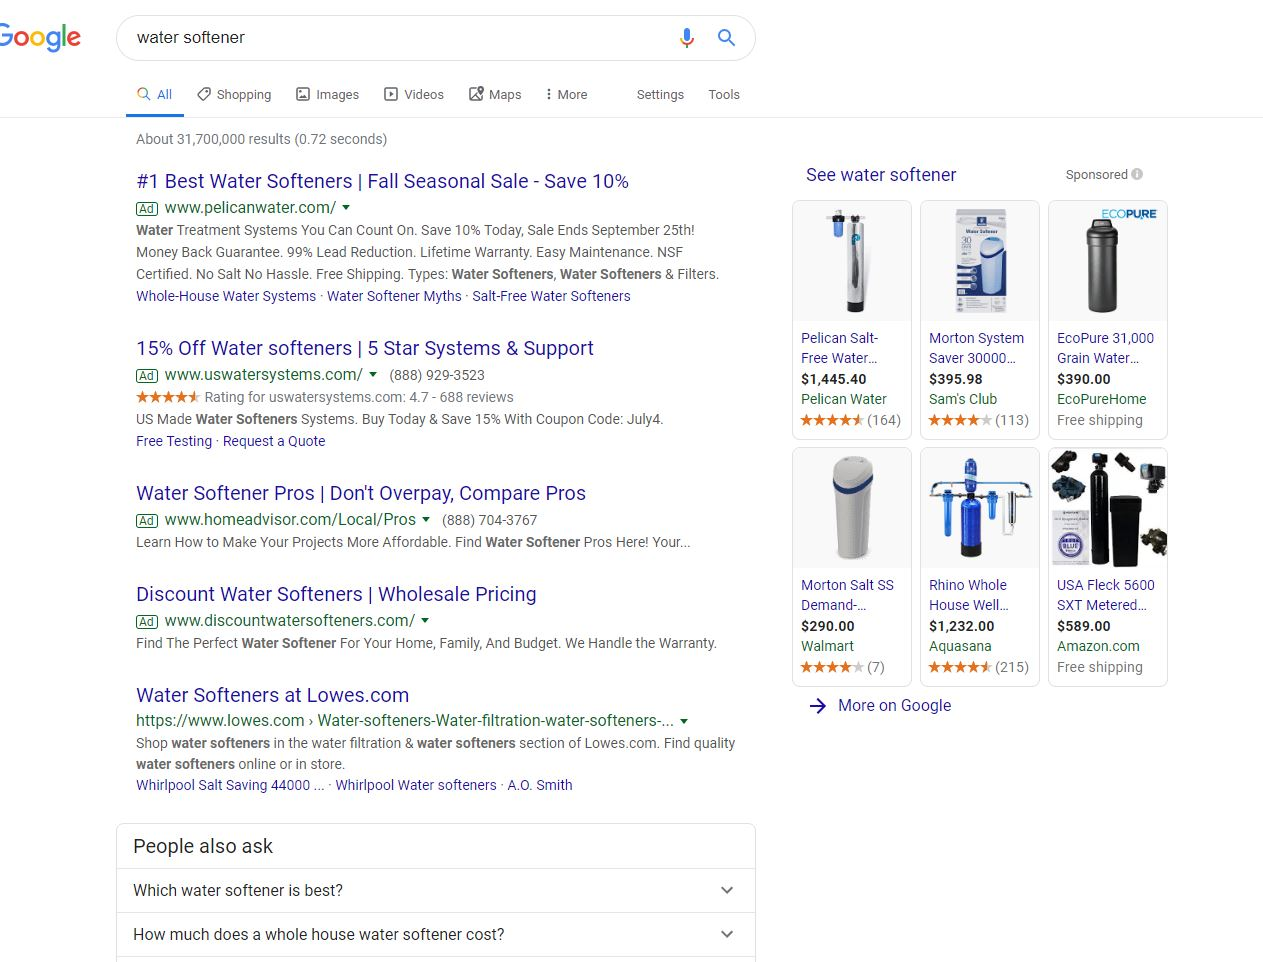 Water Softener Search Results